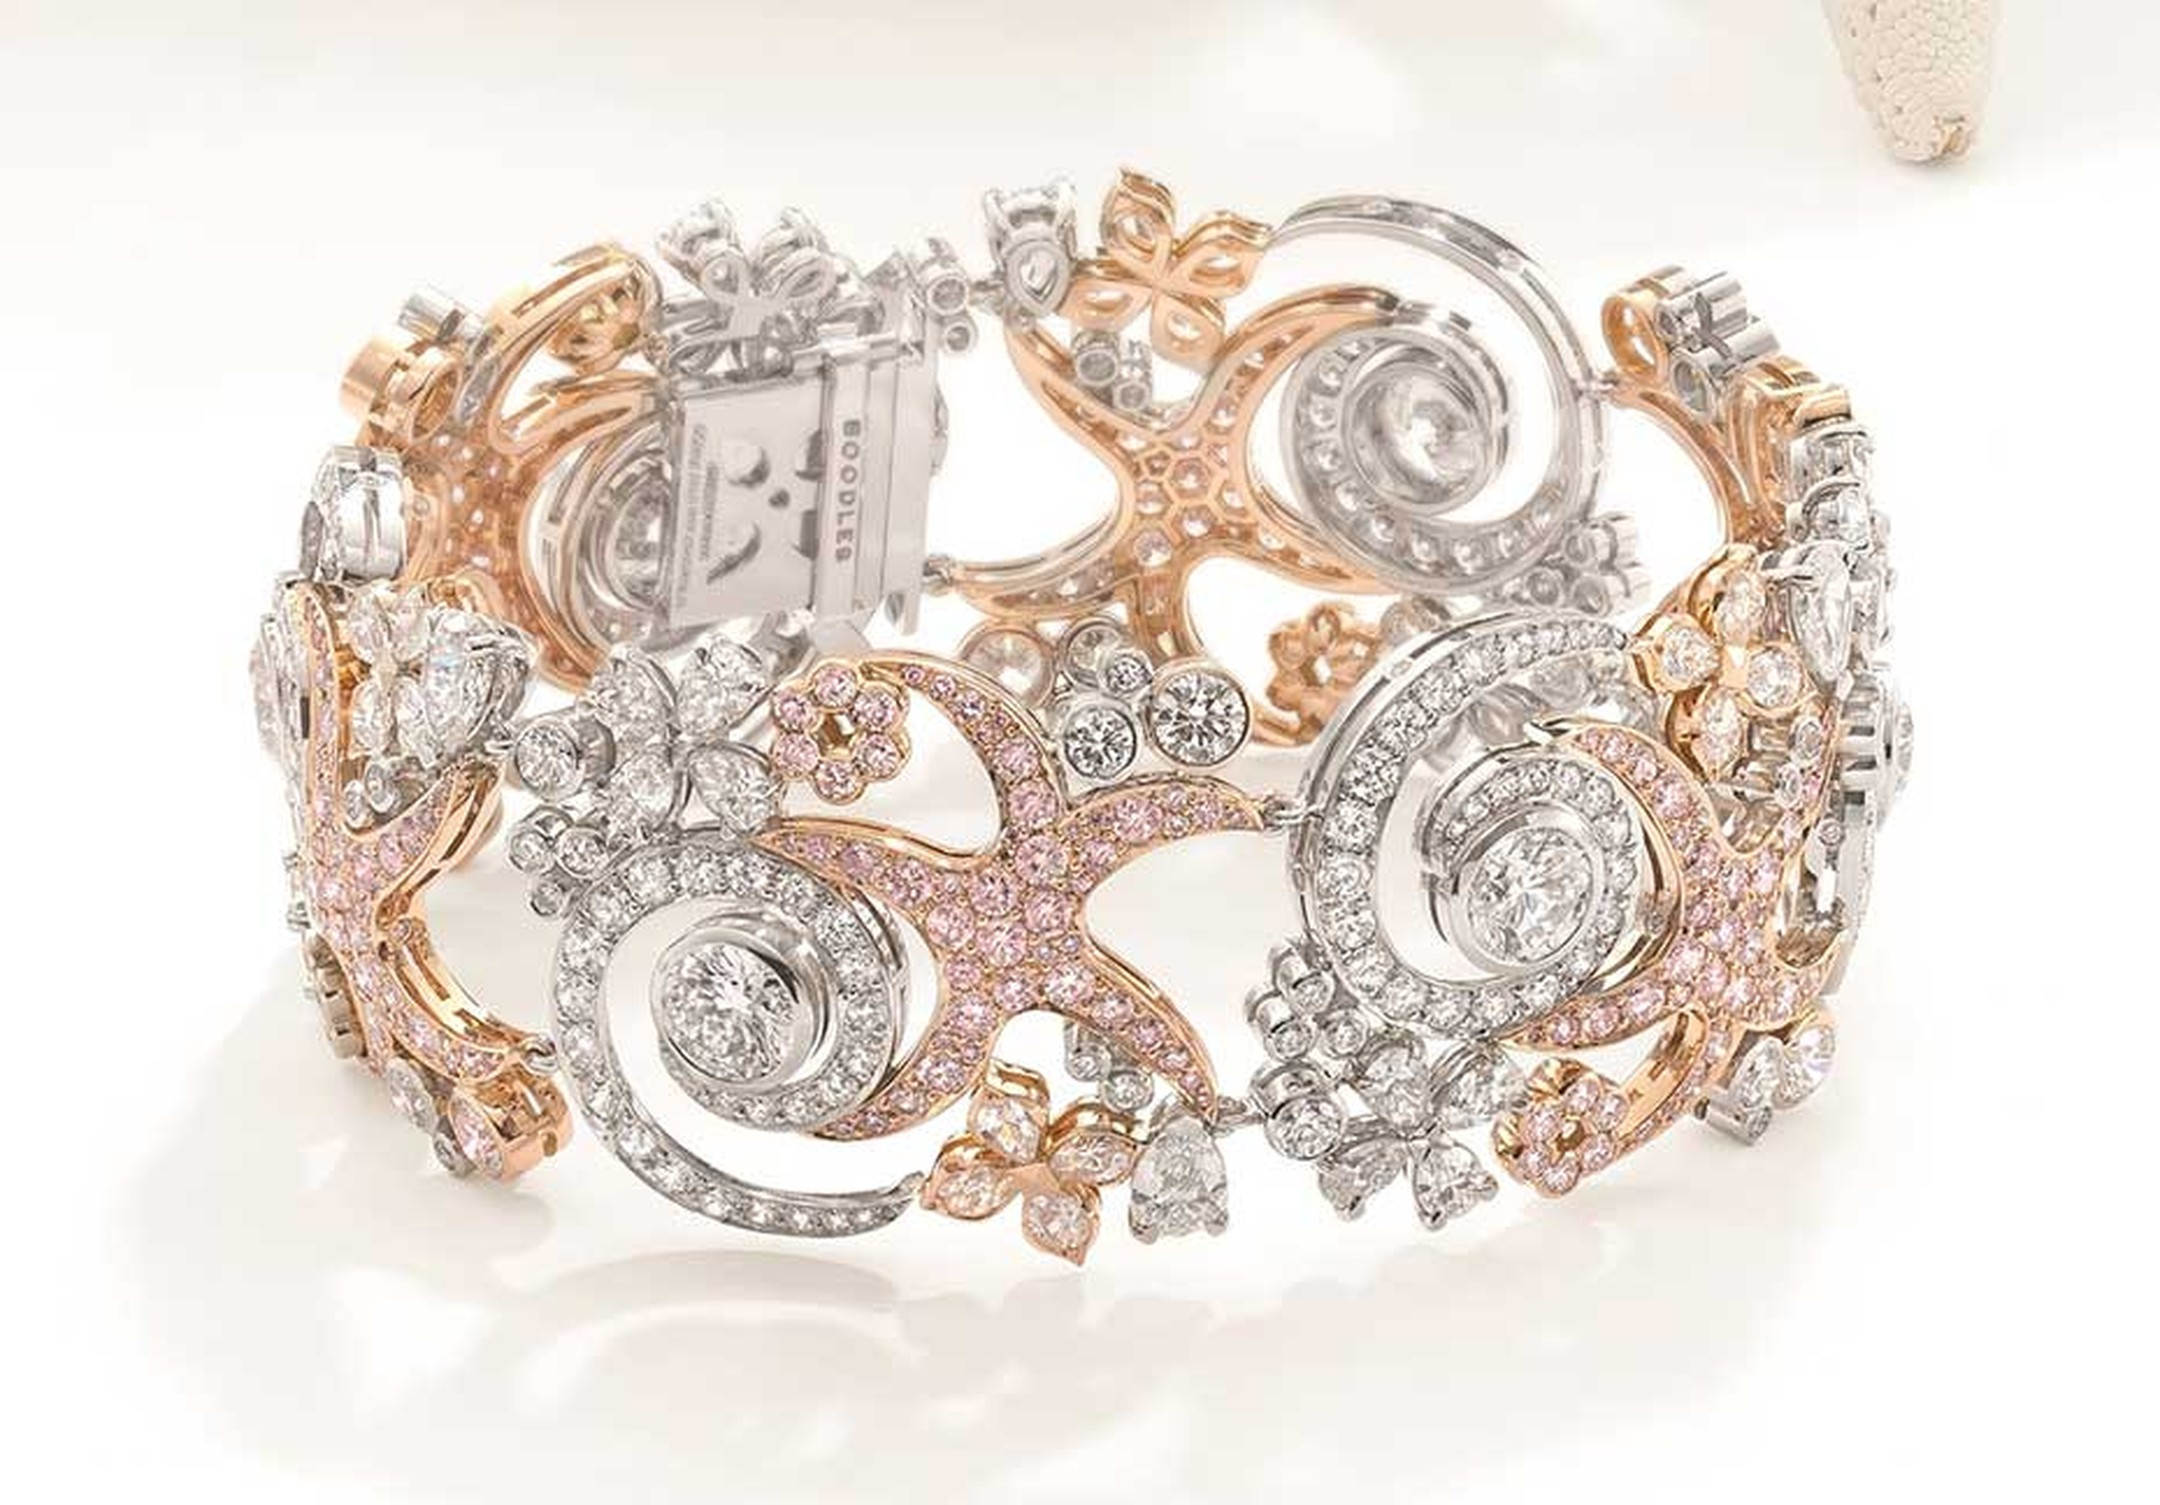 Boodles bracelet with white and pink diamonds, from the new Ocean of Dreams collection.